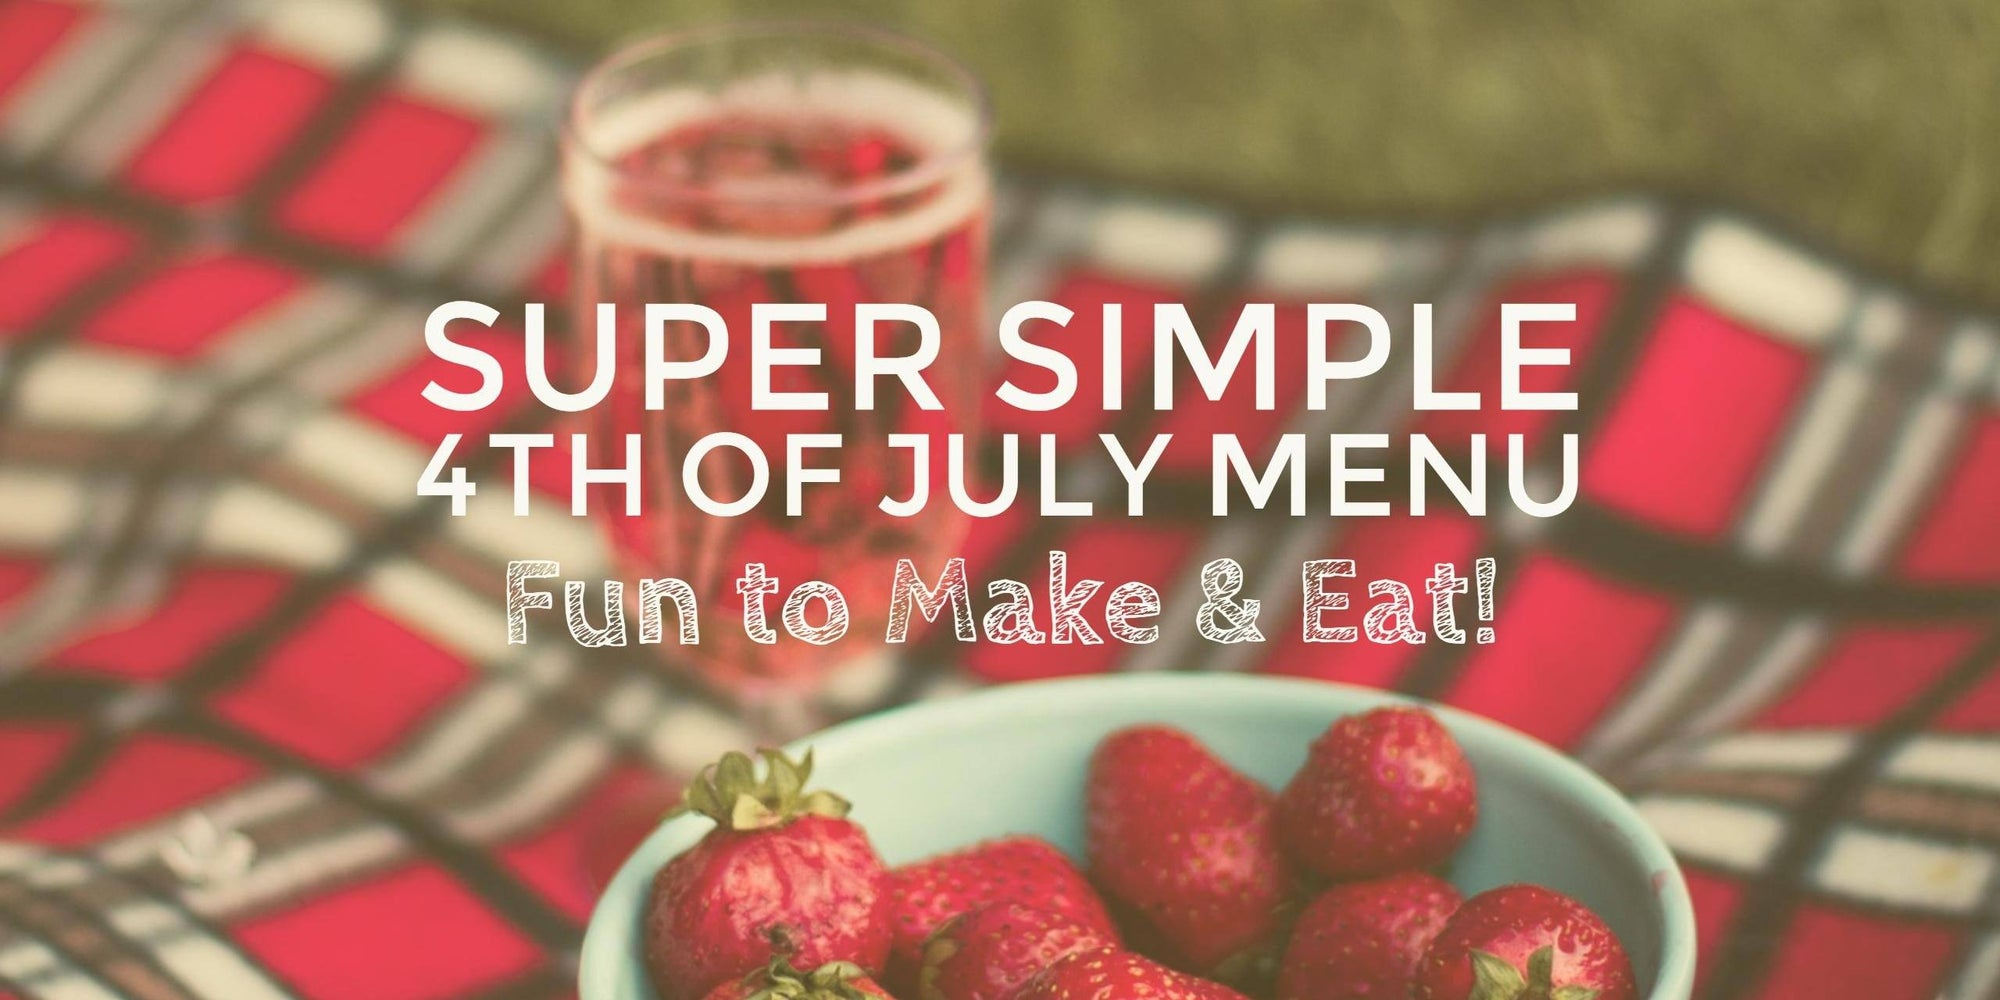 4th of July Menu That's Fun to Make & Eat